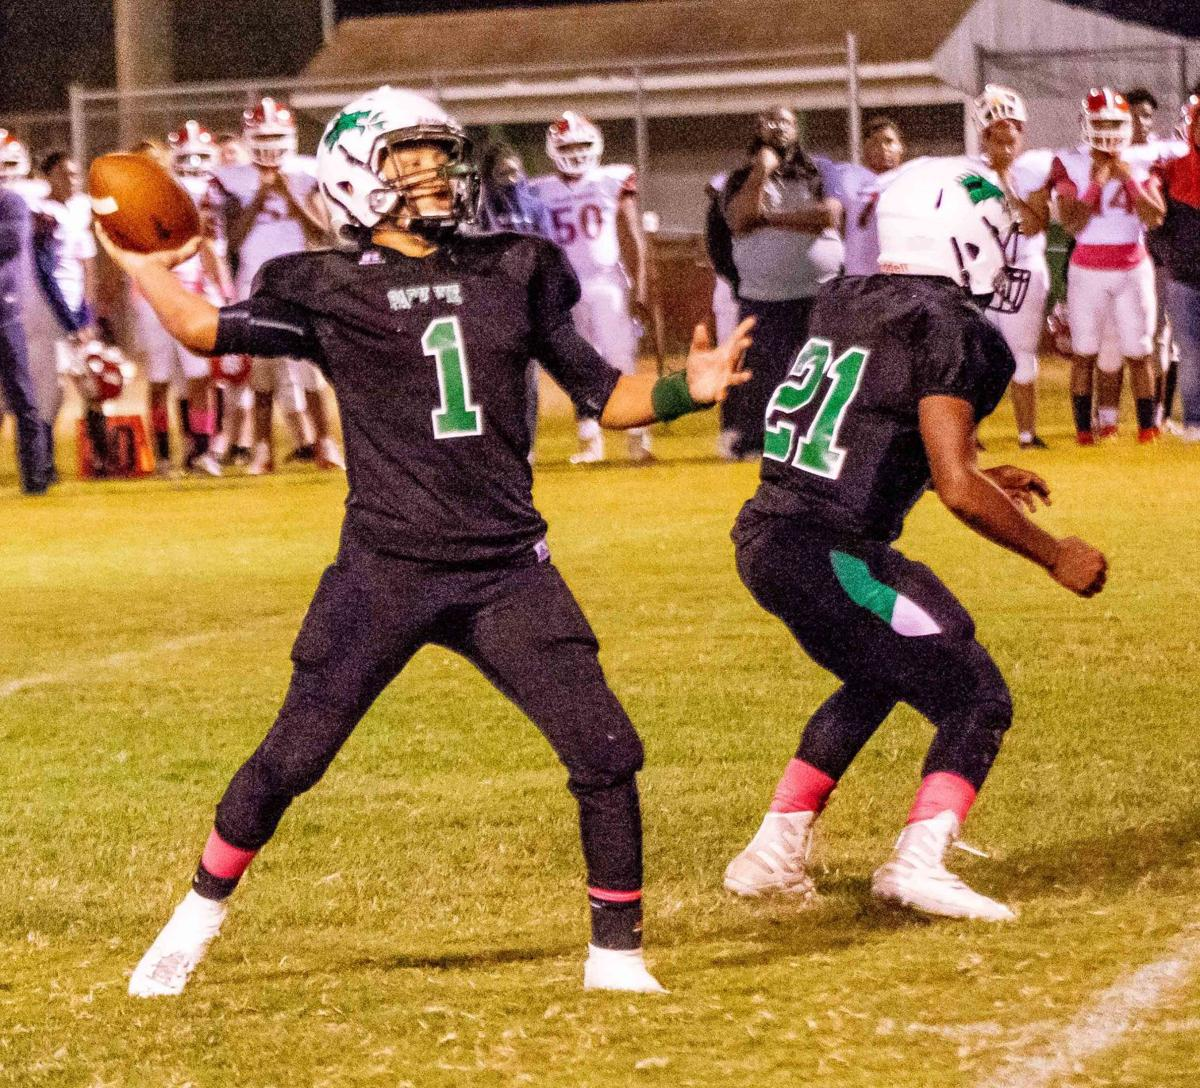 Park View HS quarterback Josh Boyd passed for 135 yards and two touchdowns and rushed for 132 yards and a score in the Dragons' 34-29 loss to Sussex-Central HS on Friday night. (Dennis Smith)